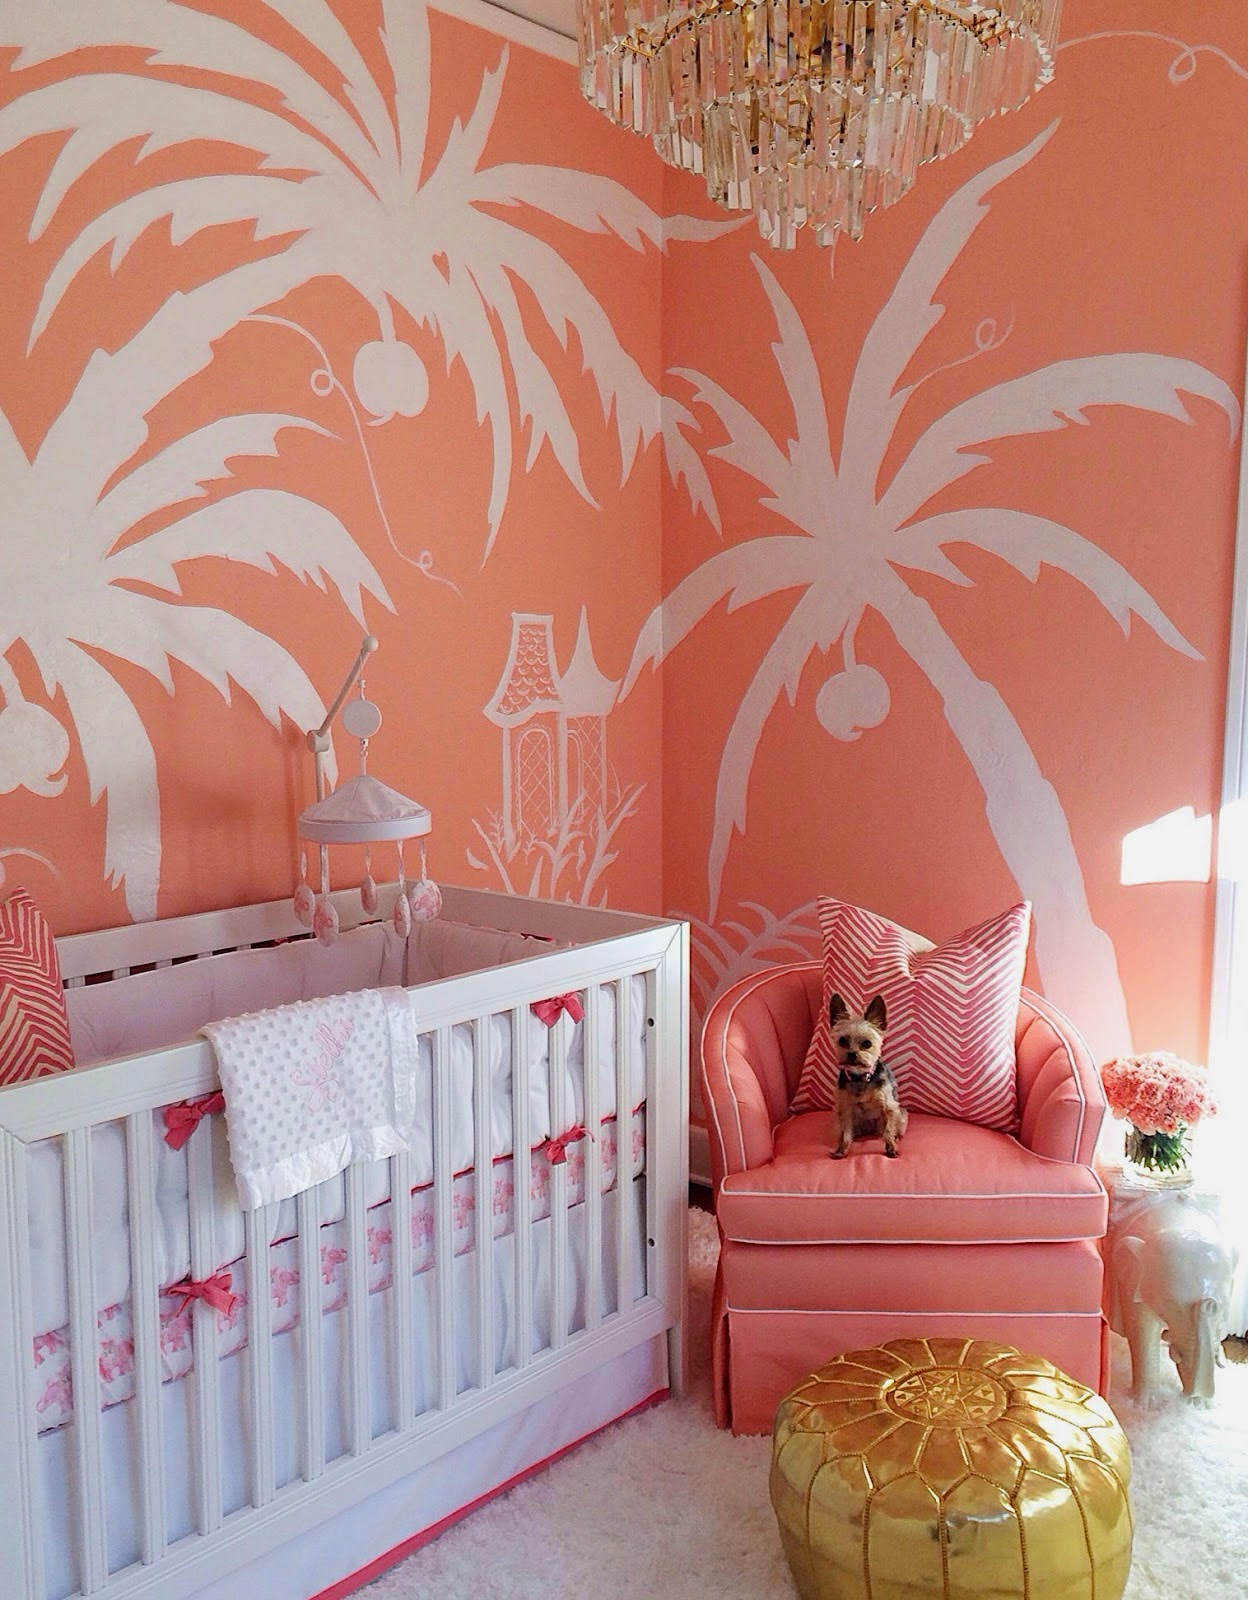 palm-beach-chic-hollywood-regency-glamorous-elegant-chinoiserie-pink-nursery